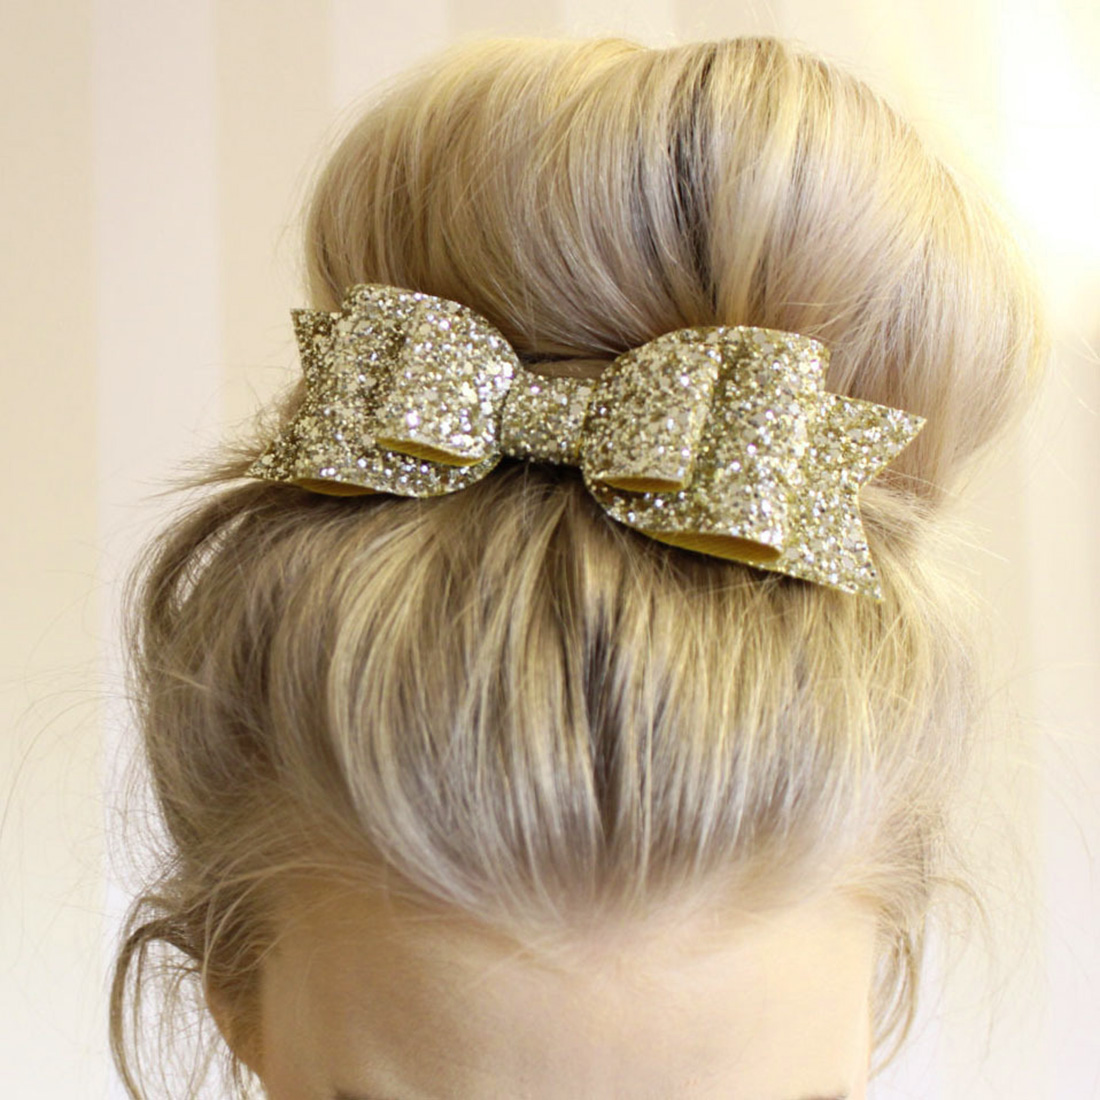 Glitter Shiny Sequins Big Bowknot Barrette  Hairpin Hair Clip Girl Style Accessories Twinkle Paillette Hairgrip Fashion Headwear